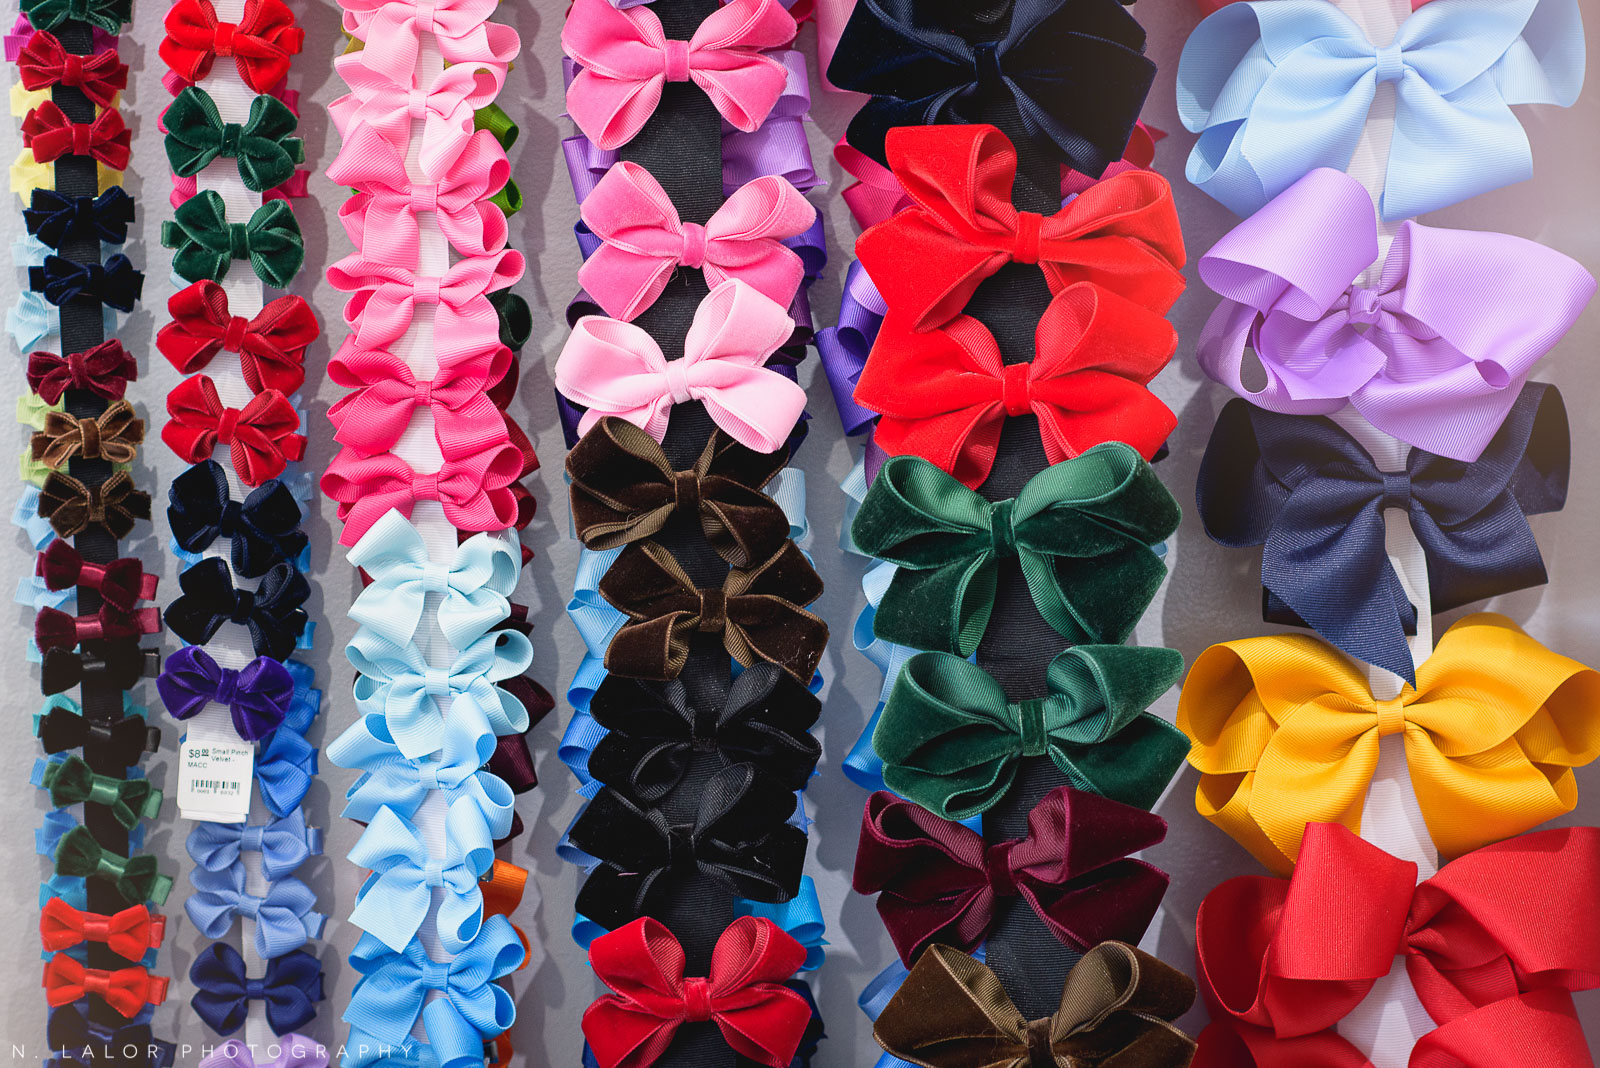 Girl bow accessories galore at Ella & Henry in New Canaan, CT. Photo by N. Lalor Photography.